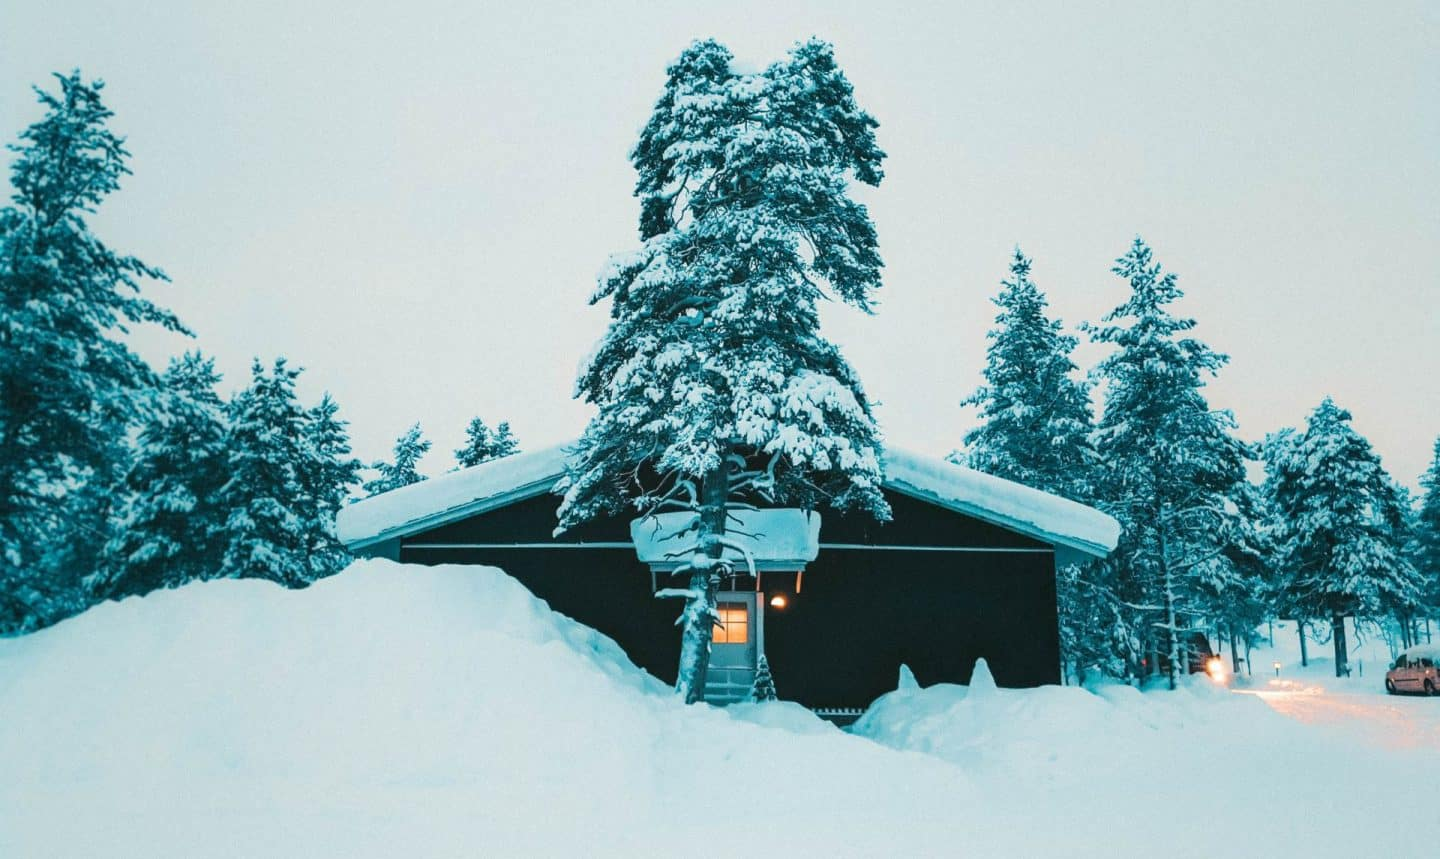 a building covered by snow Finnish Lapland, Lapland destinations, Lapland Finland, Inghams